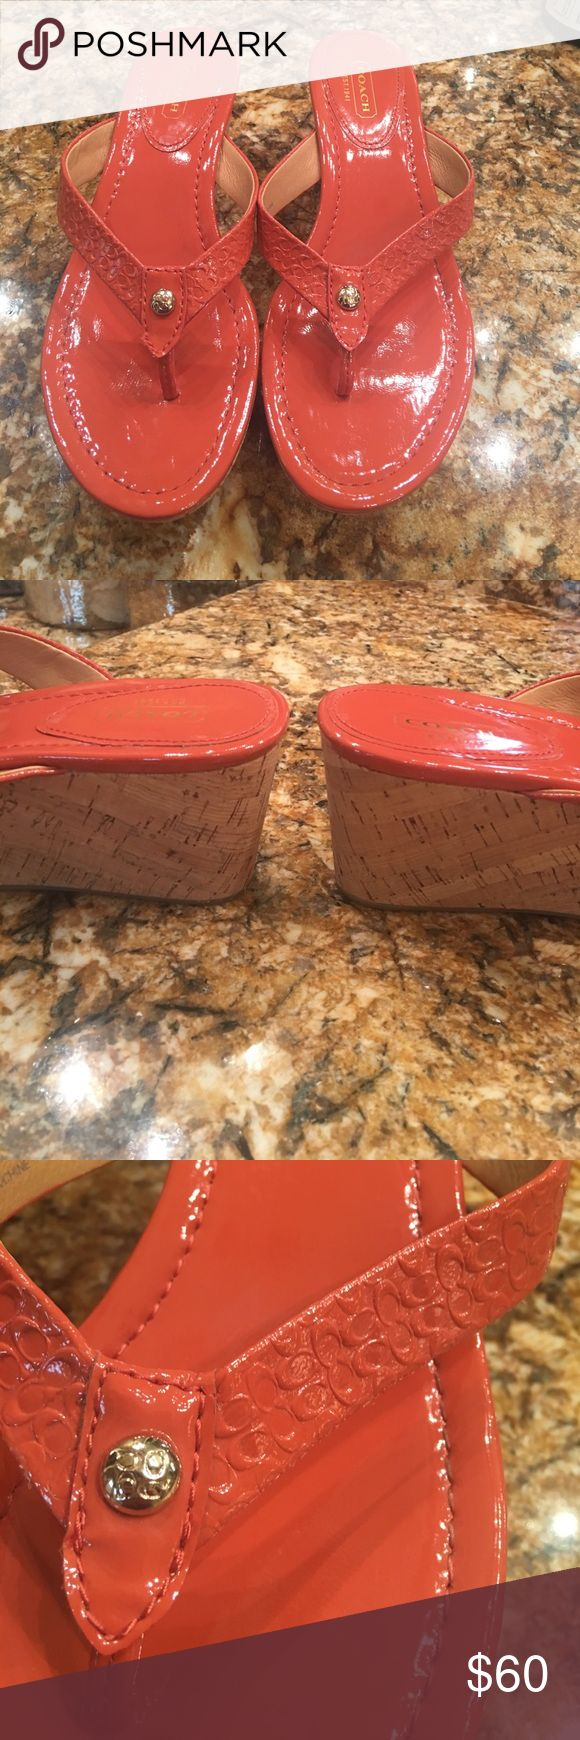 """Ladies wedges by COACH Ladies wedge sandal by Coach.  NWOT. Perfect condition, super cute!  I wear an 8 and these are 7 1/2 heel ht is 2 1/2"""" and foot area is 1 1/2"""". Coral in color Coach Shoes Wedges"""